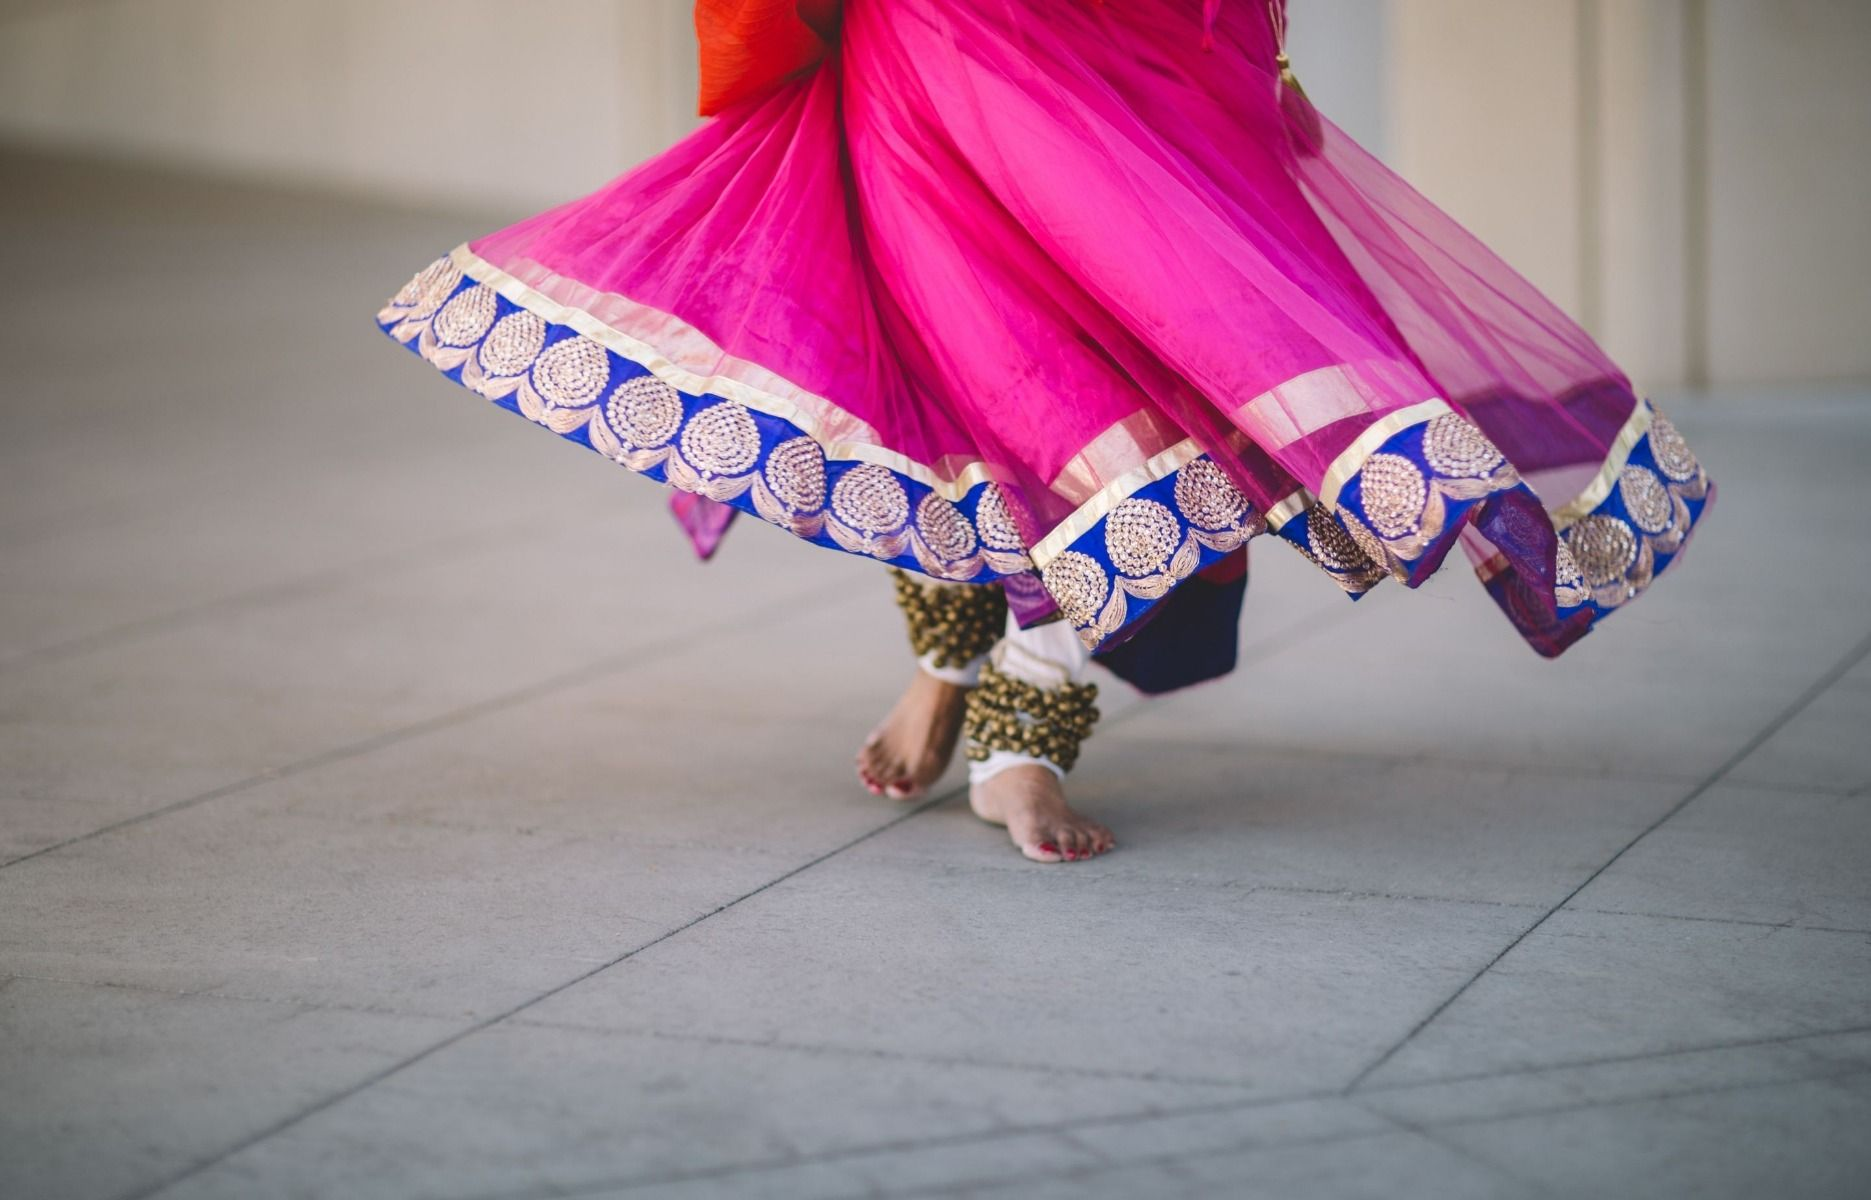 Dancer wearing pink Sari